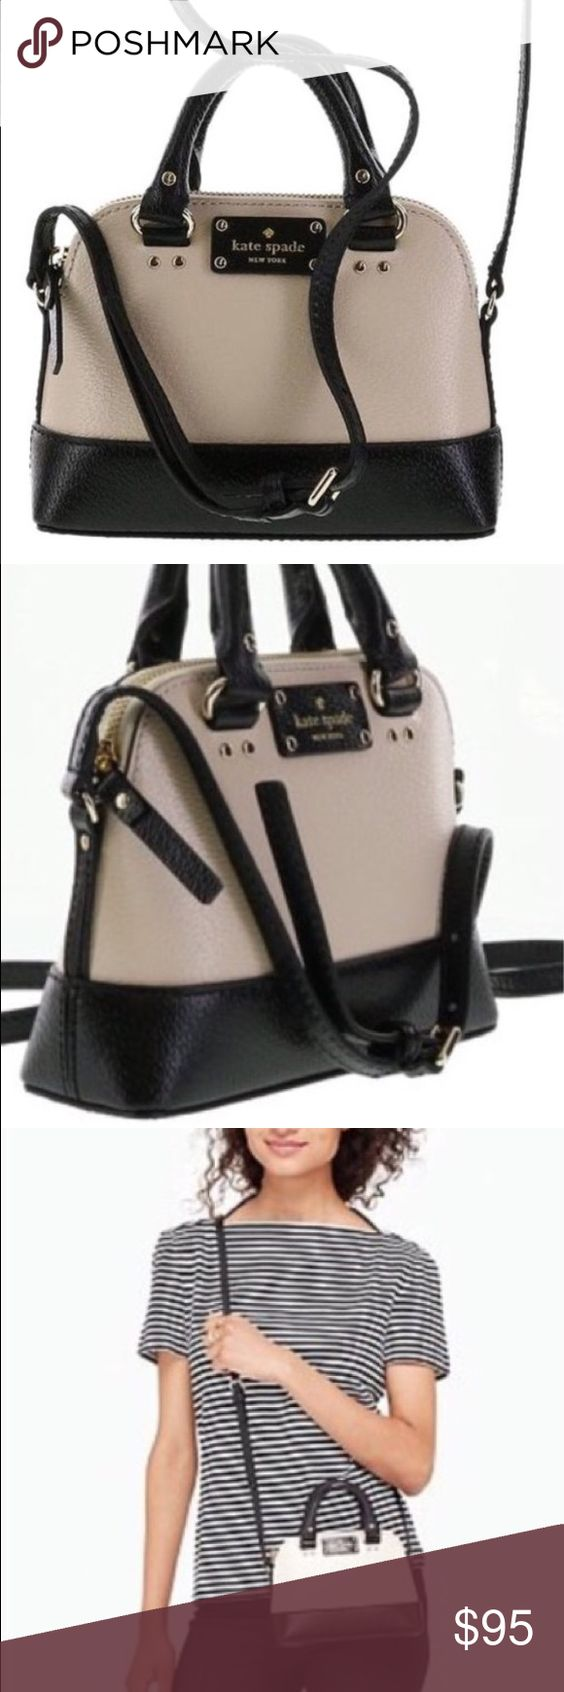 Wellesley Mini Rachelle Kate Spade Crossbody Brand new, never used kate spade crossbody. Such a cute purse with very durable and beautiful leather and gold hardware. kate spade Bags Crossbody Bags